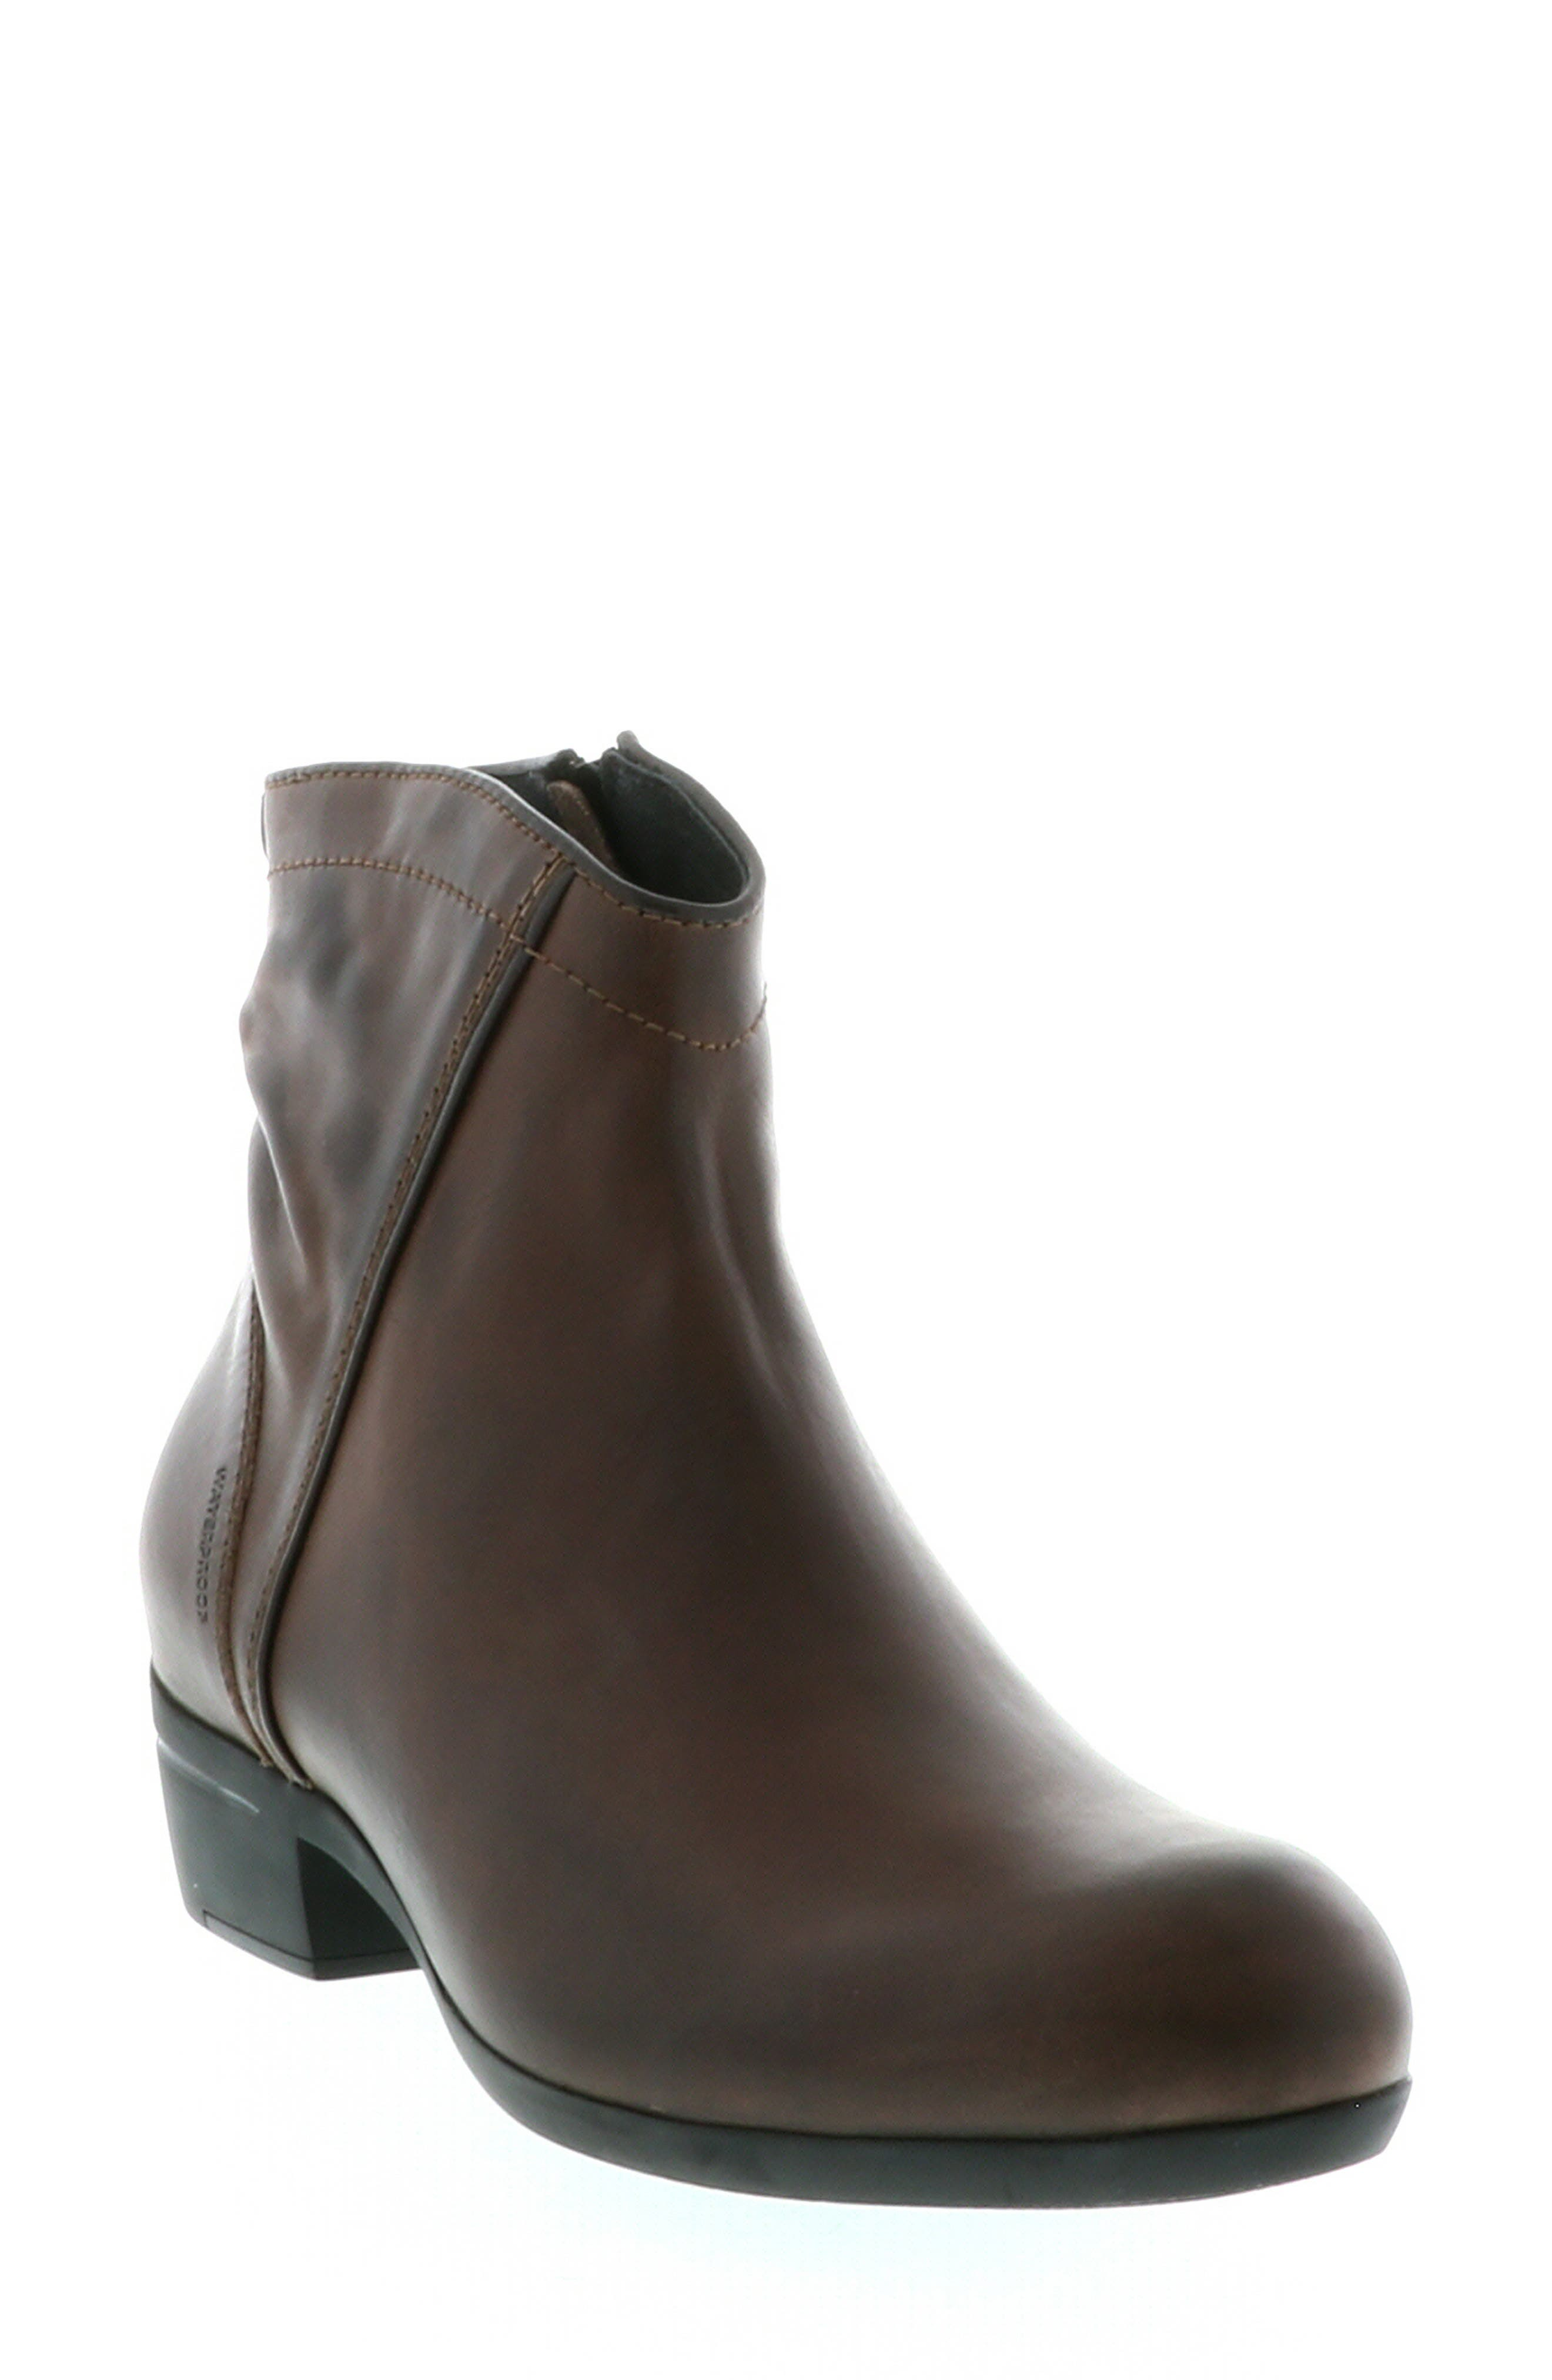 Wolky Winchester Bootie, Grey